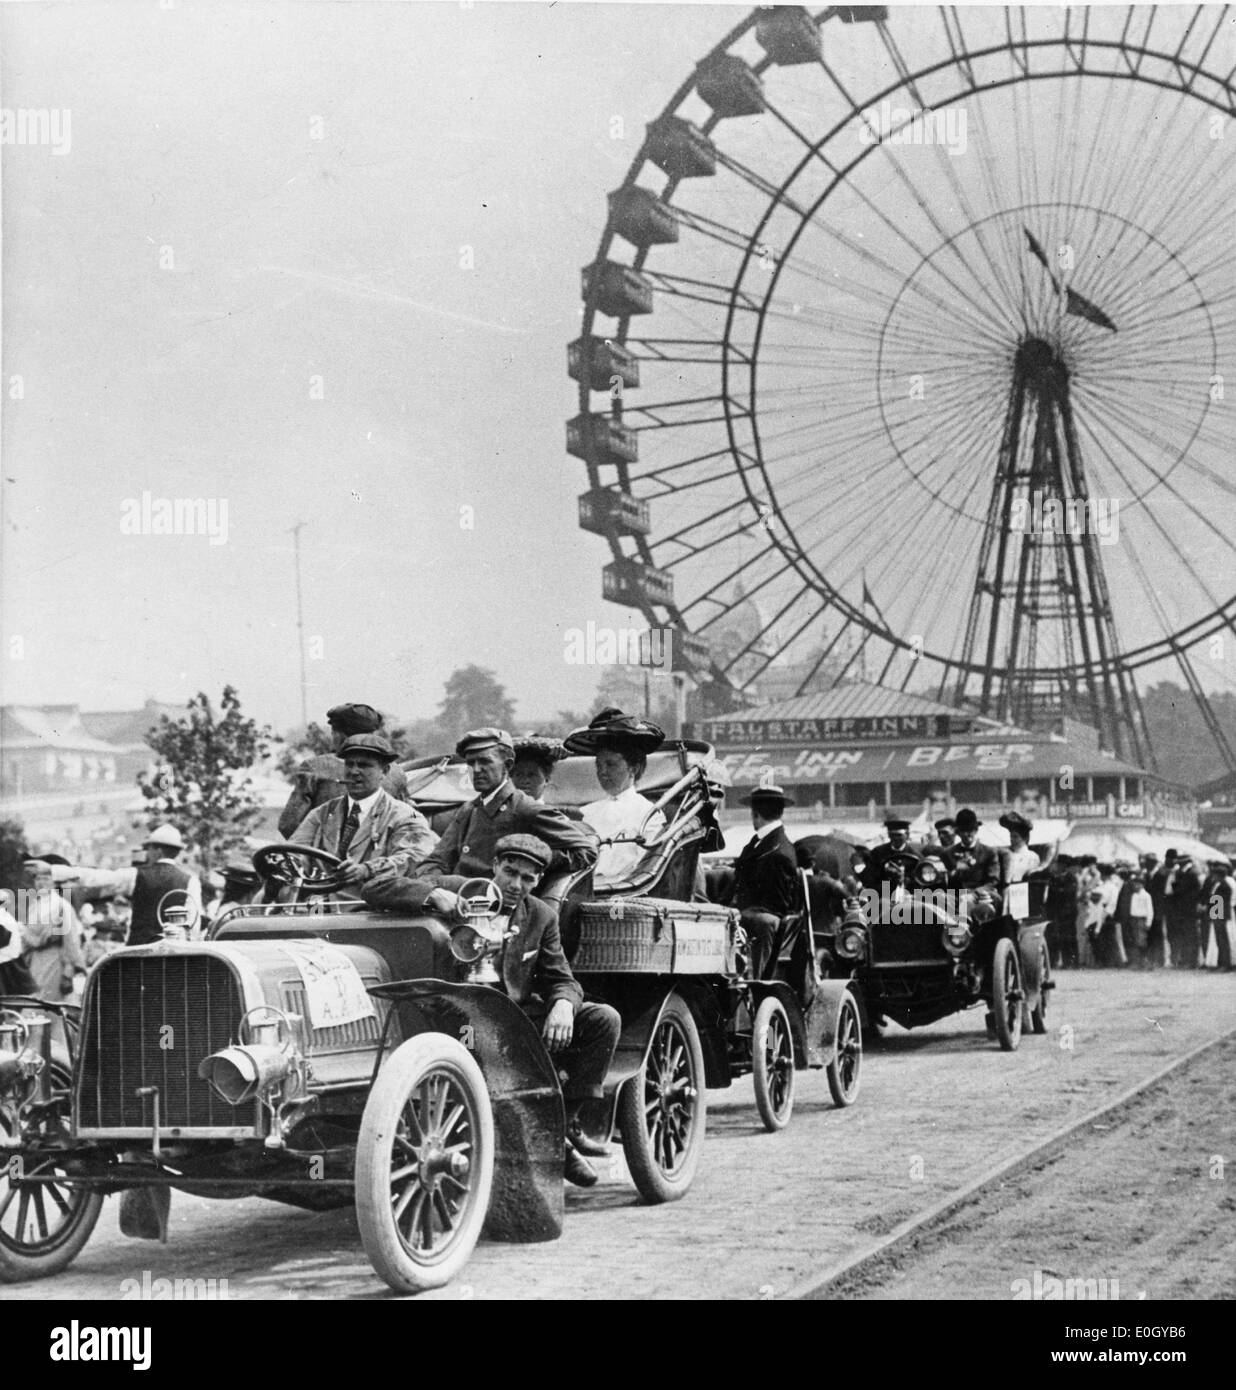 Automobile Parade during the St. Louis World's Fair - Stock Image